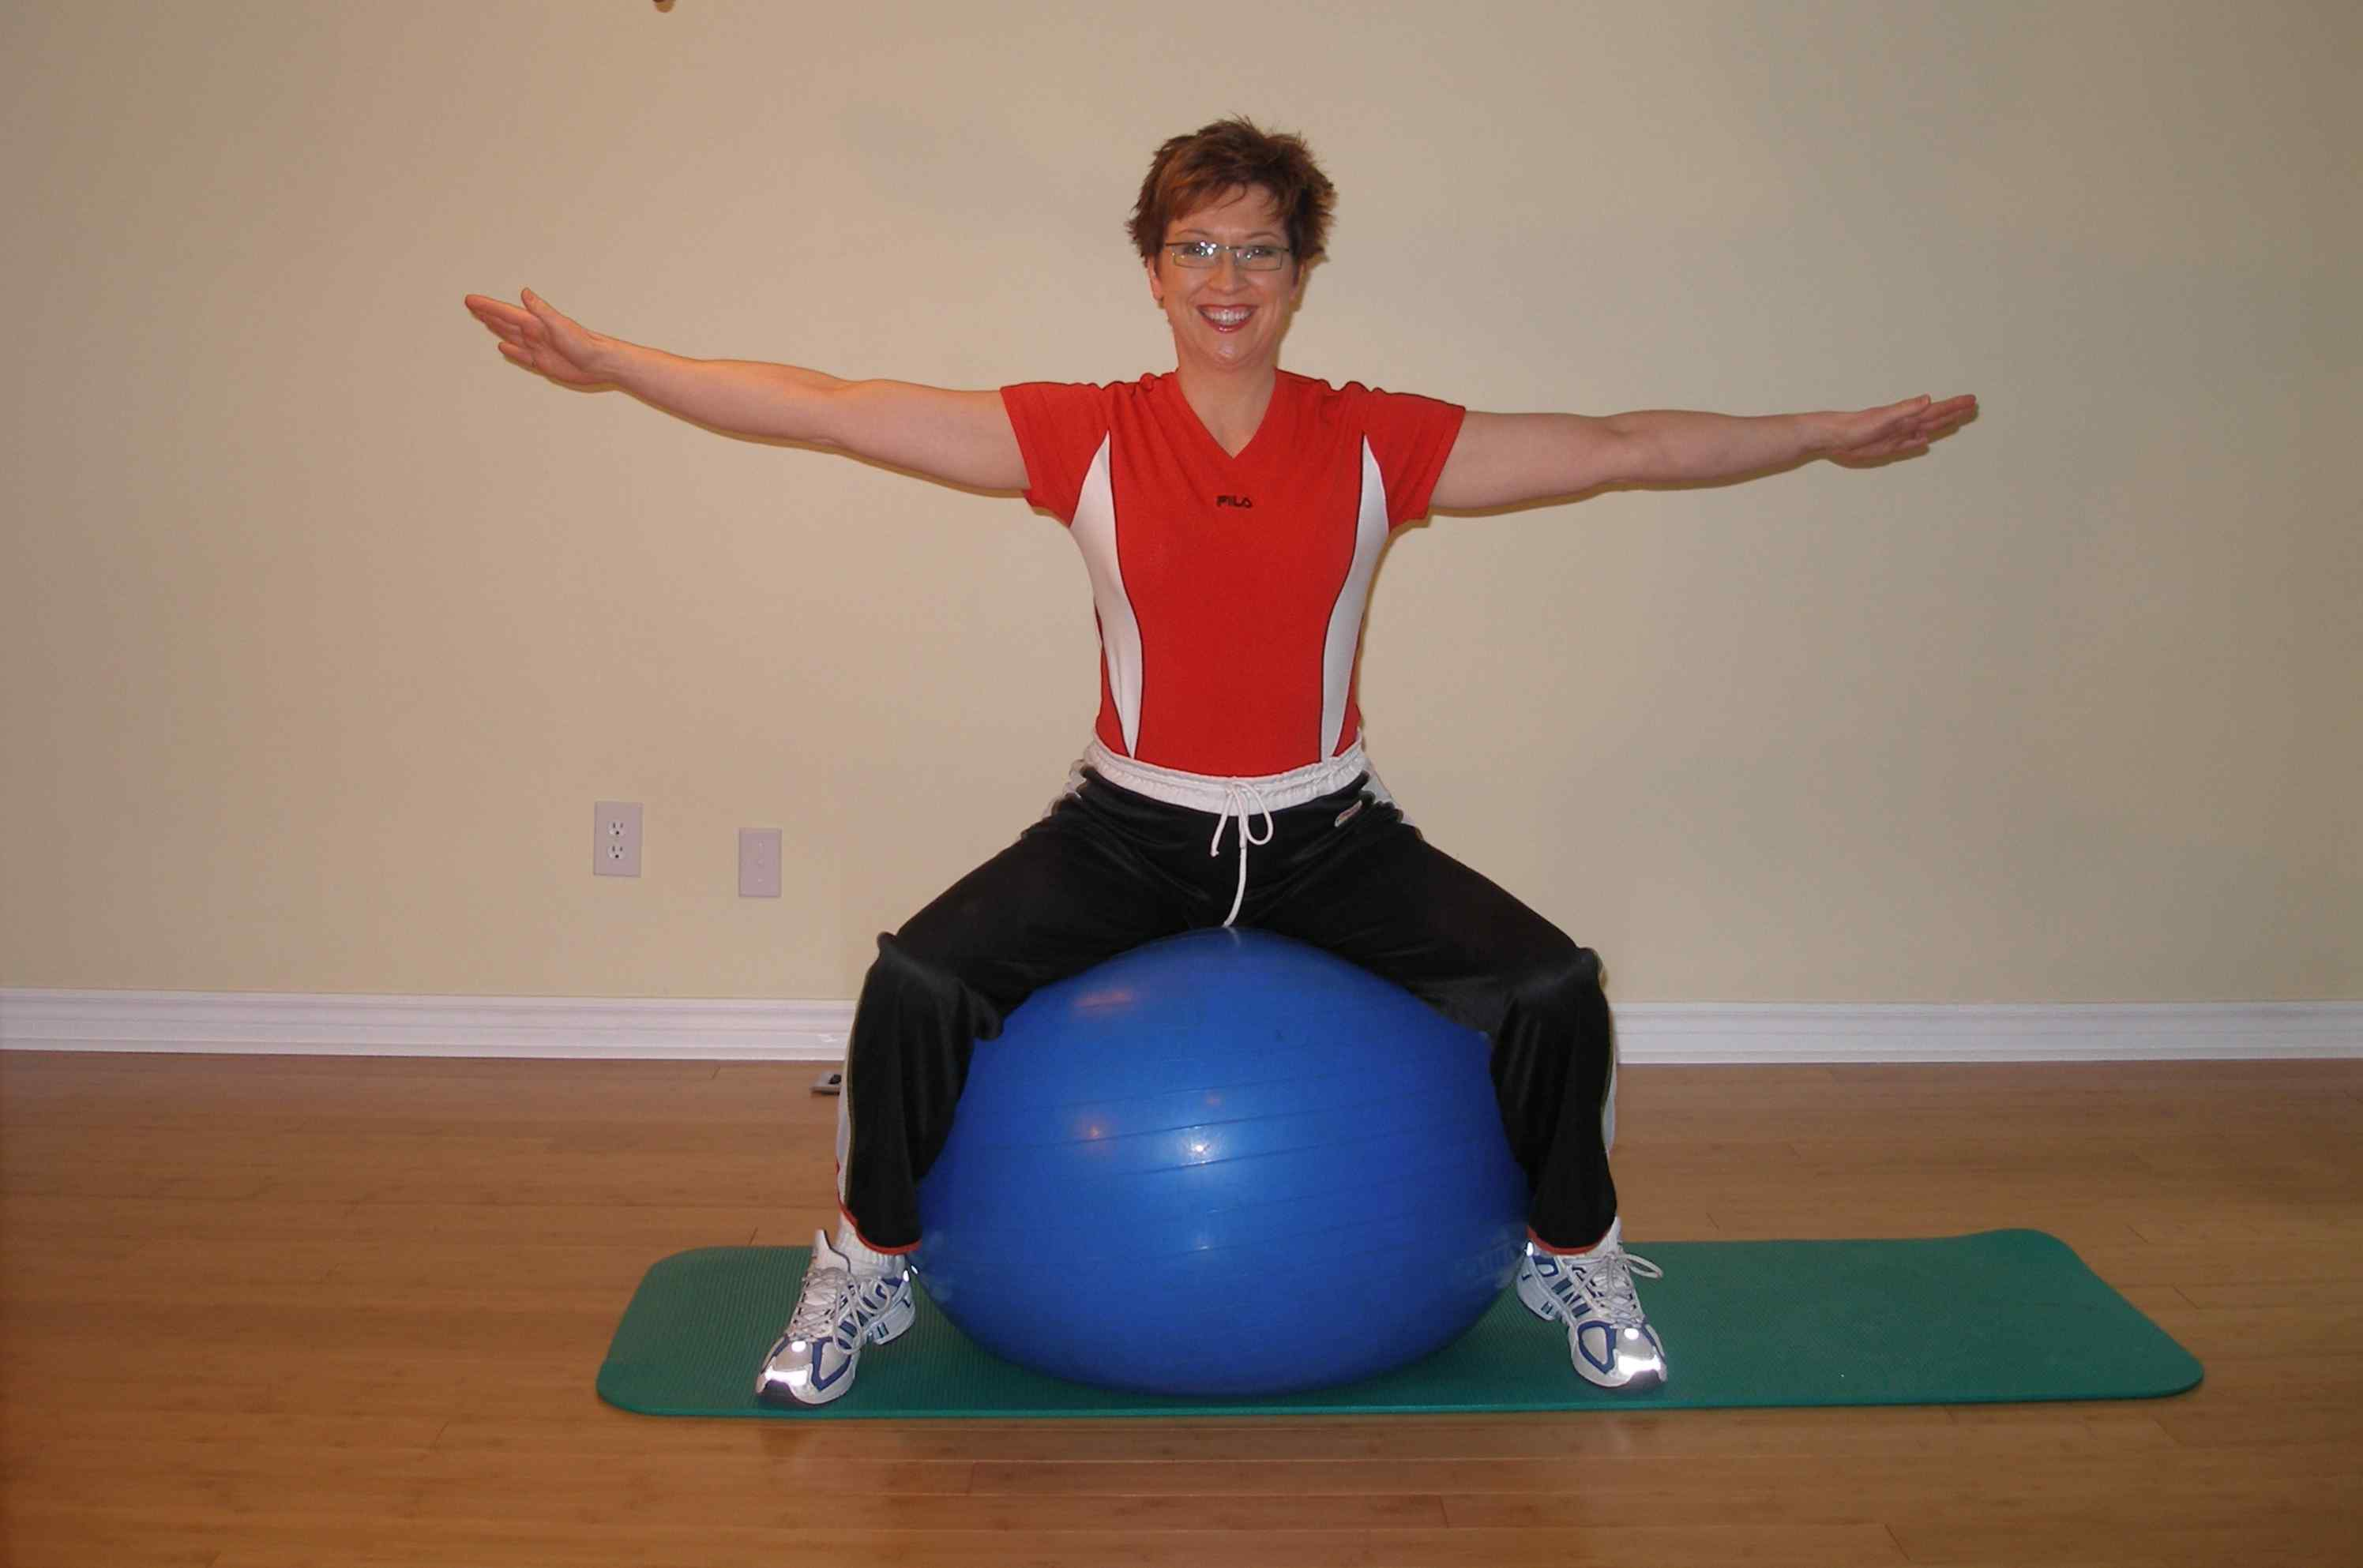 thigh squeezes - inner thigh exercise start